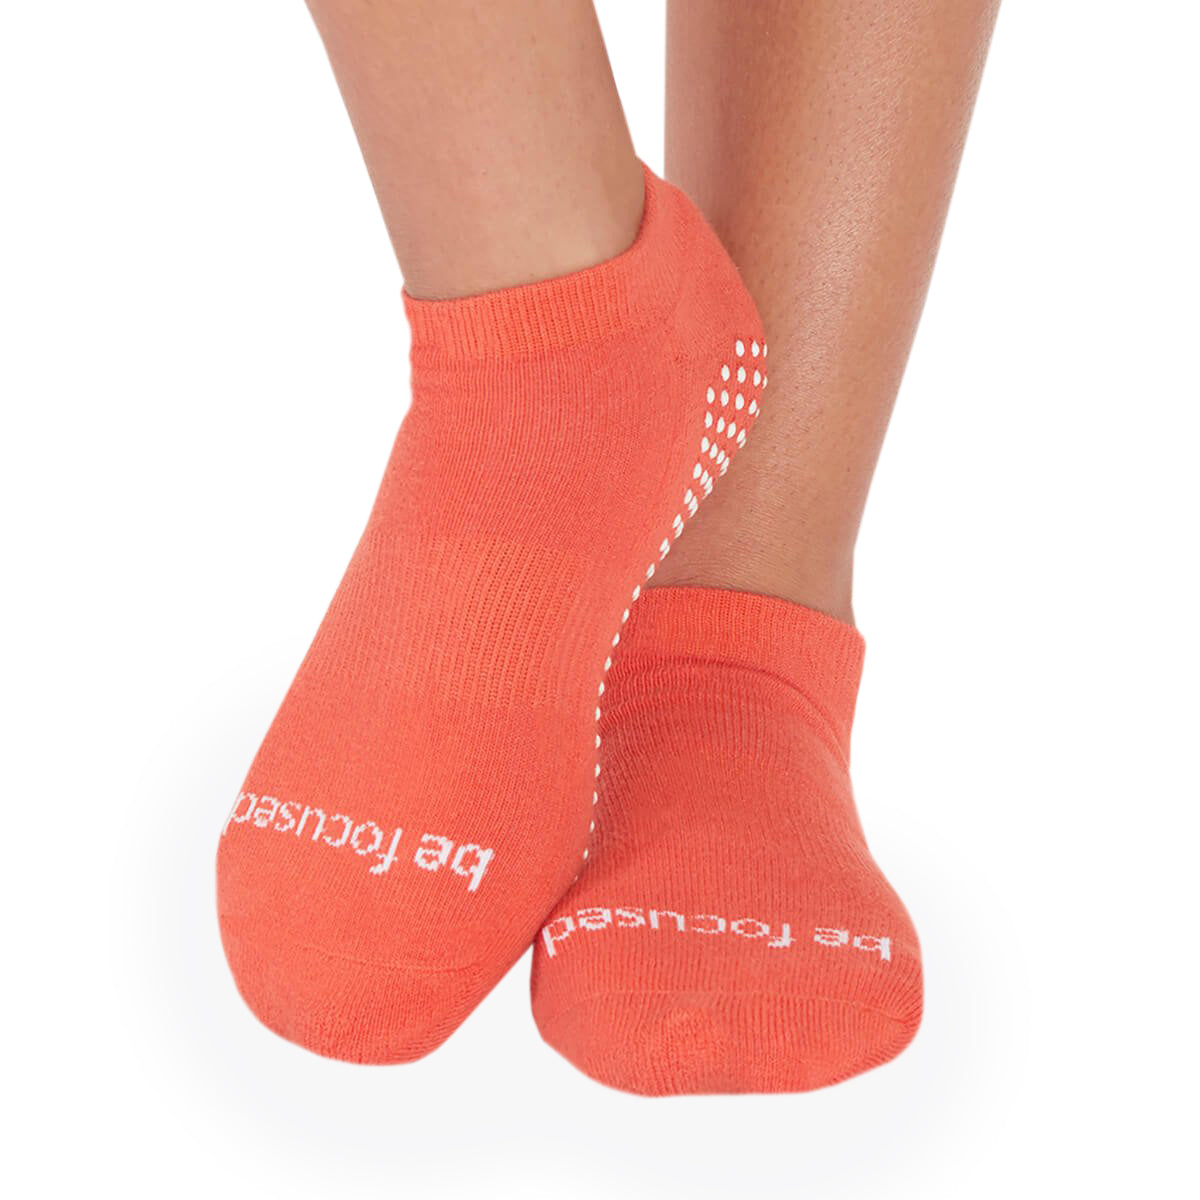 SALE Be Focused Grip Socks (Sienna/White)